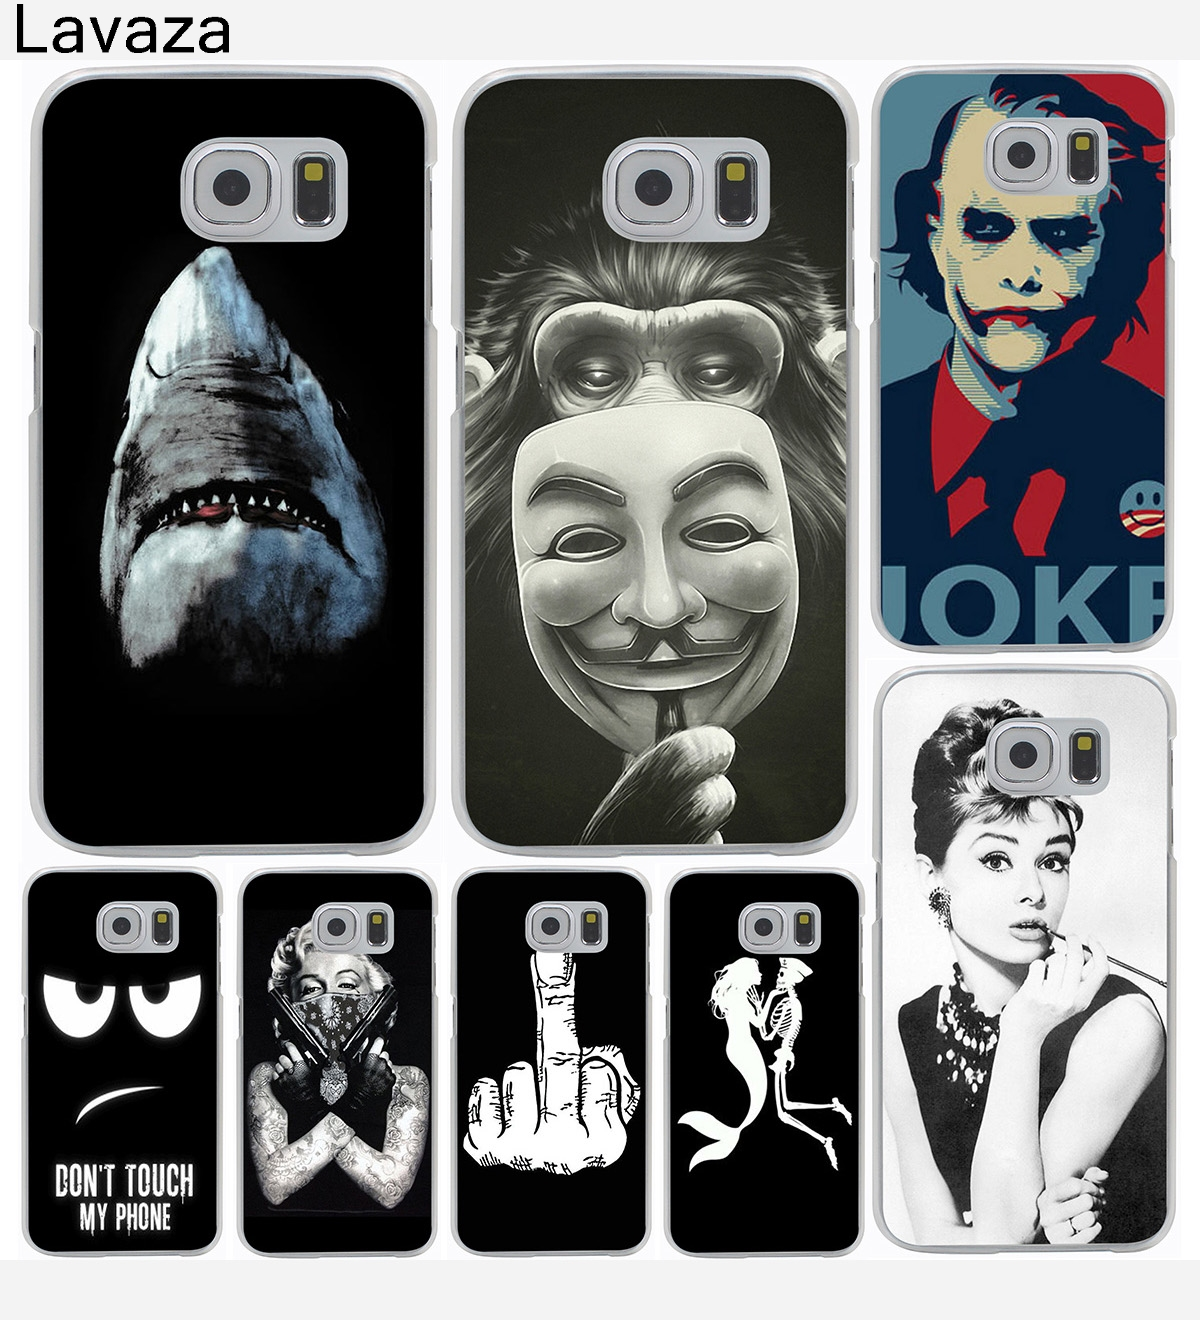 Lavaza Classic Audrey Hepburn Joke Shark Hard Phone Cover Case for Samsung Galaxy S9 S6 S7 Edge S8 Plus S3 S4 S5 & Mini Case